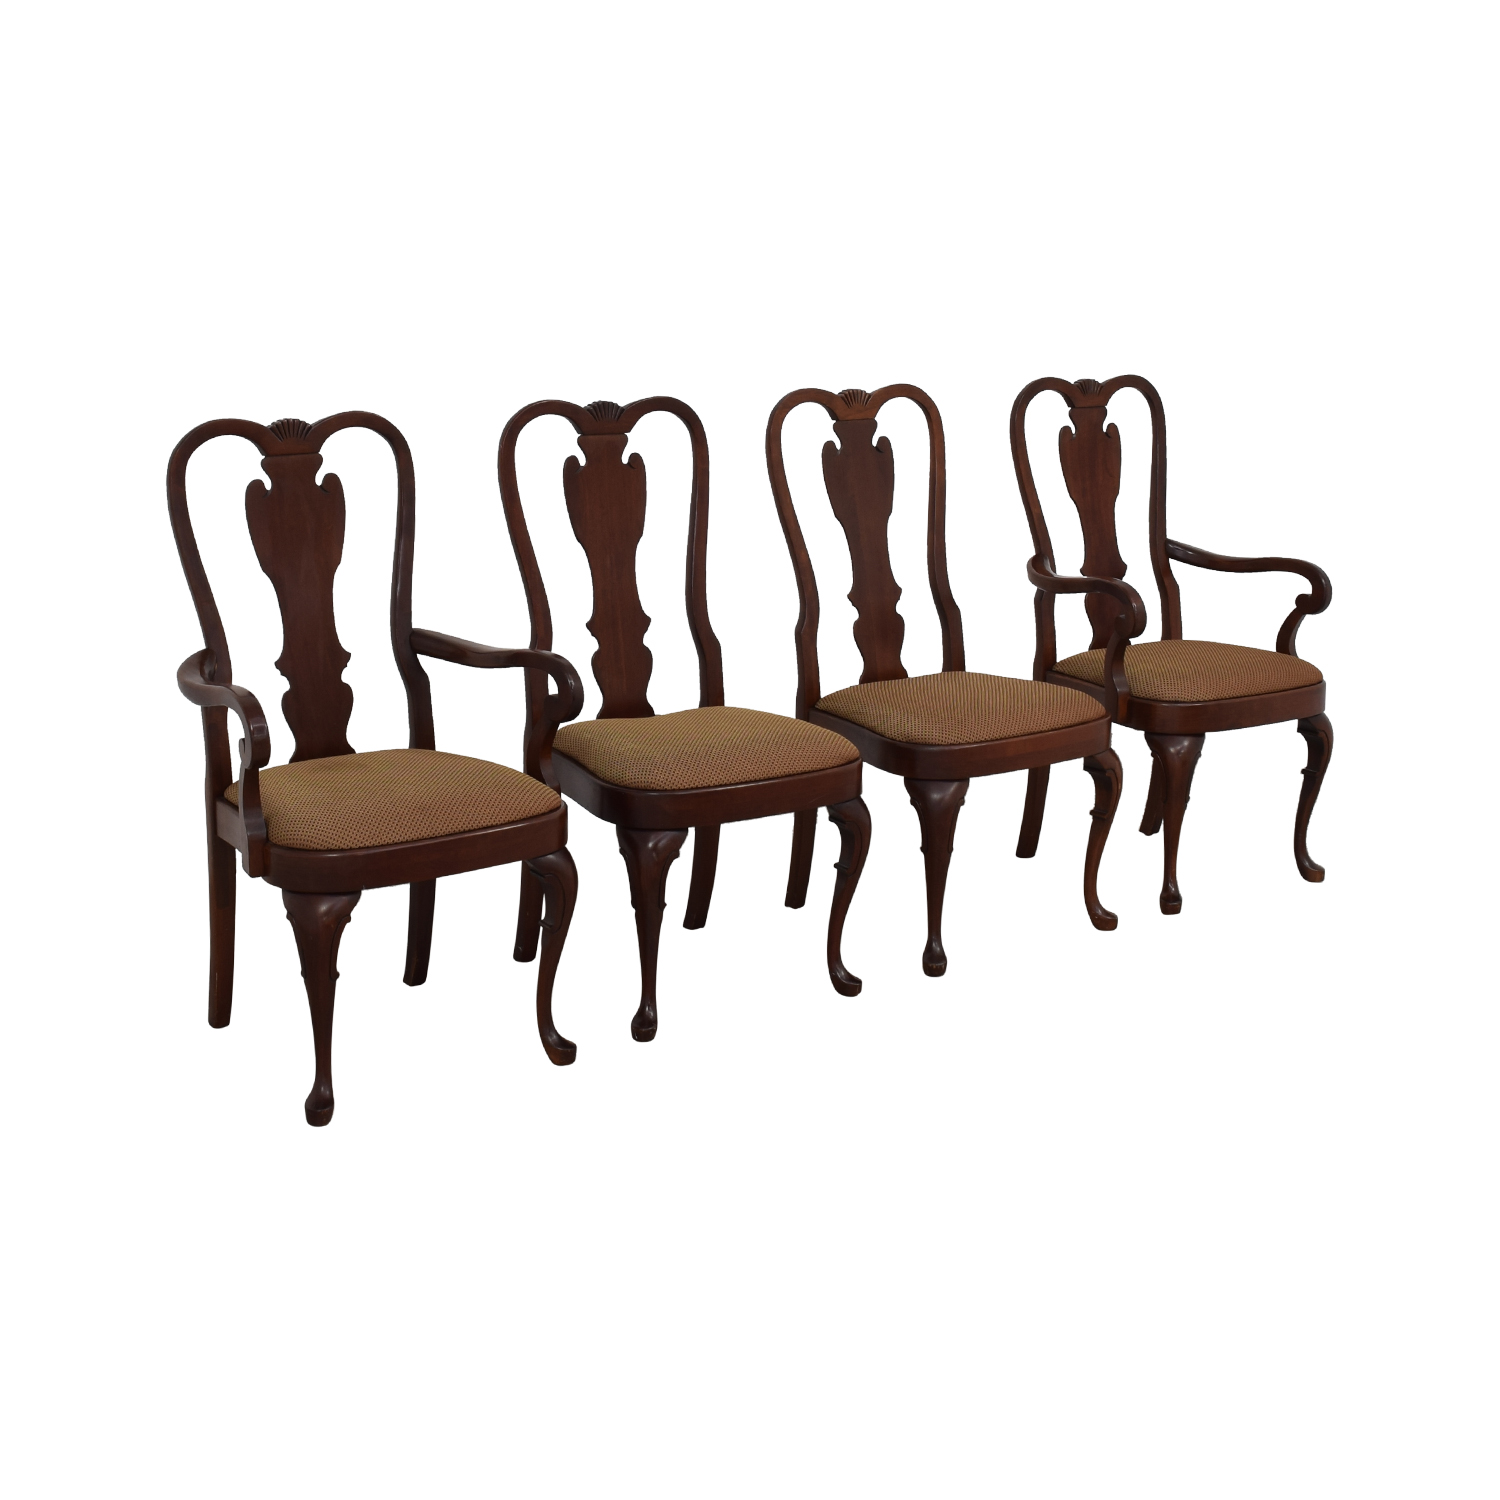 Pennsylvania House Dining Chairs sale